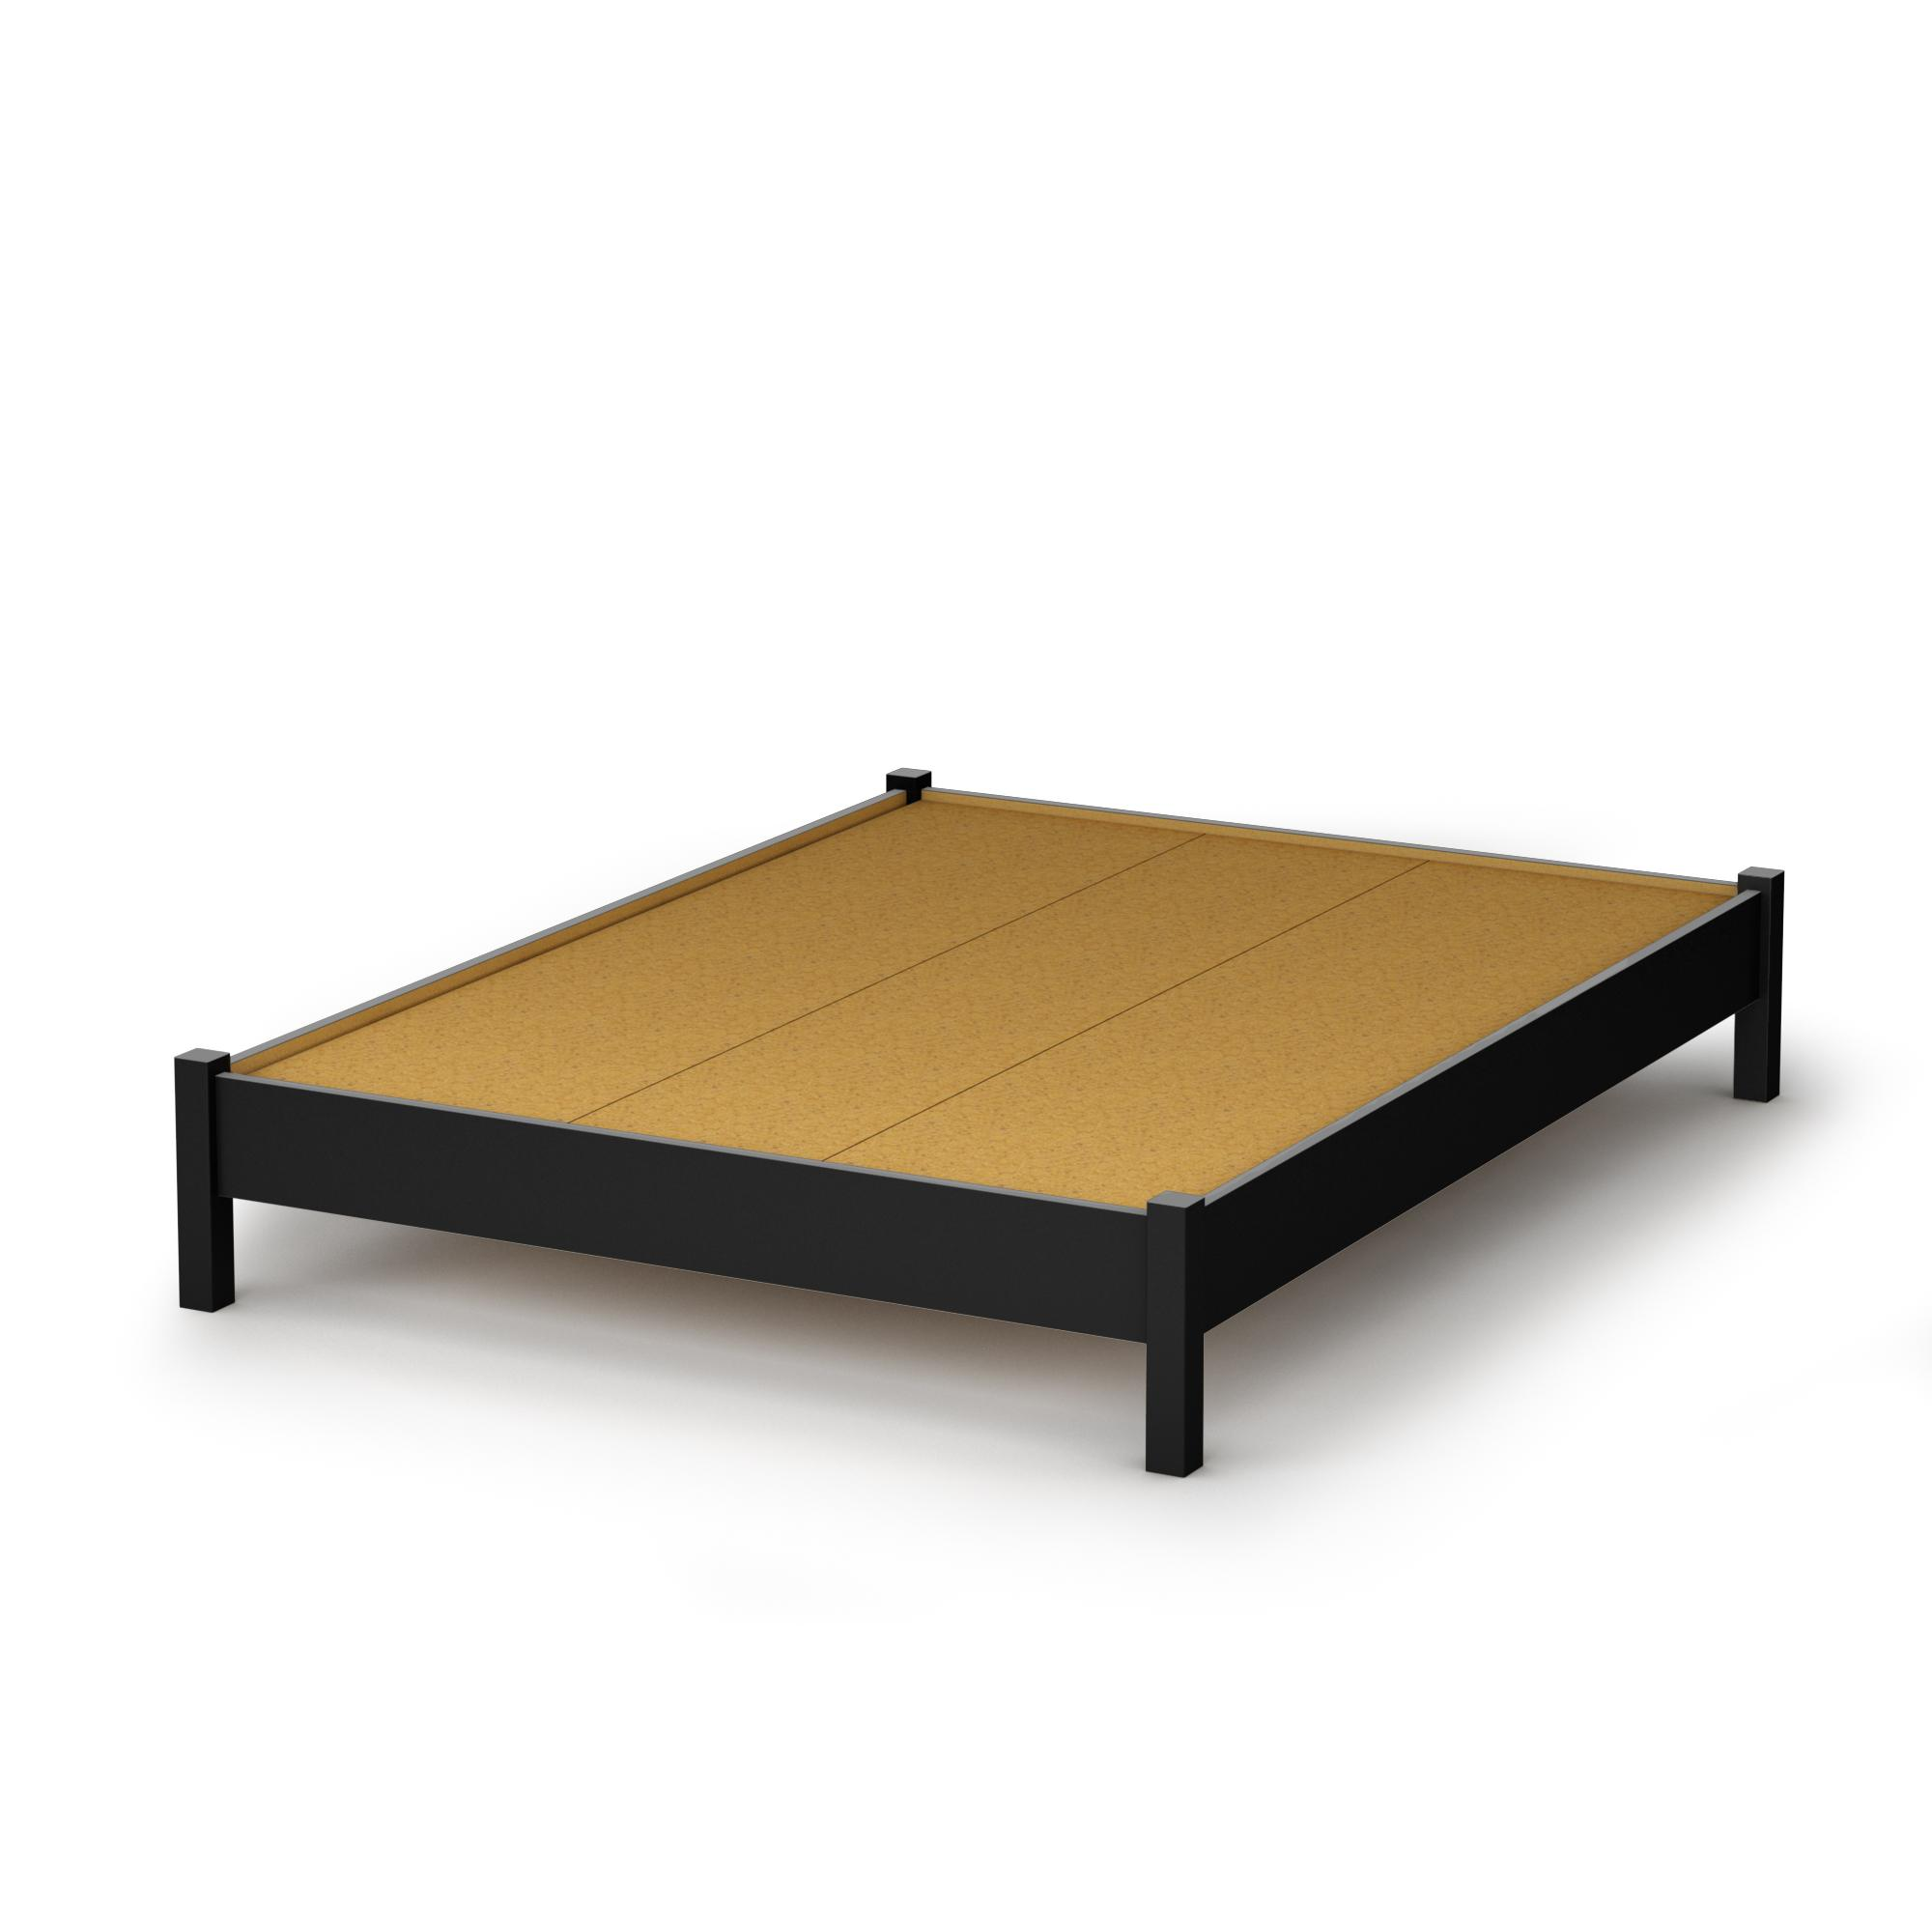 "South Shore Step One Full Platform Bed (54"") in Pure Black by OJ ..."